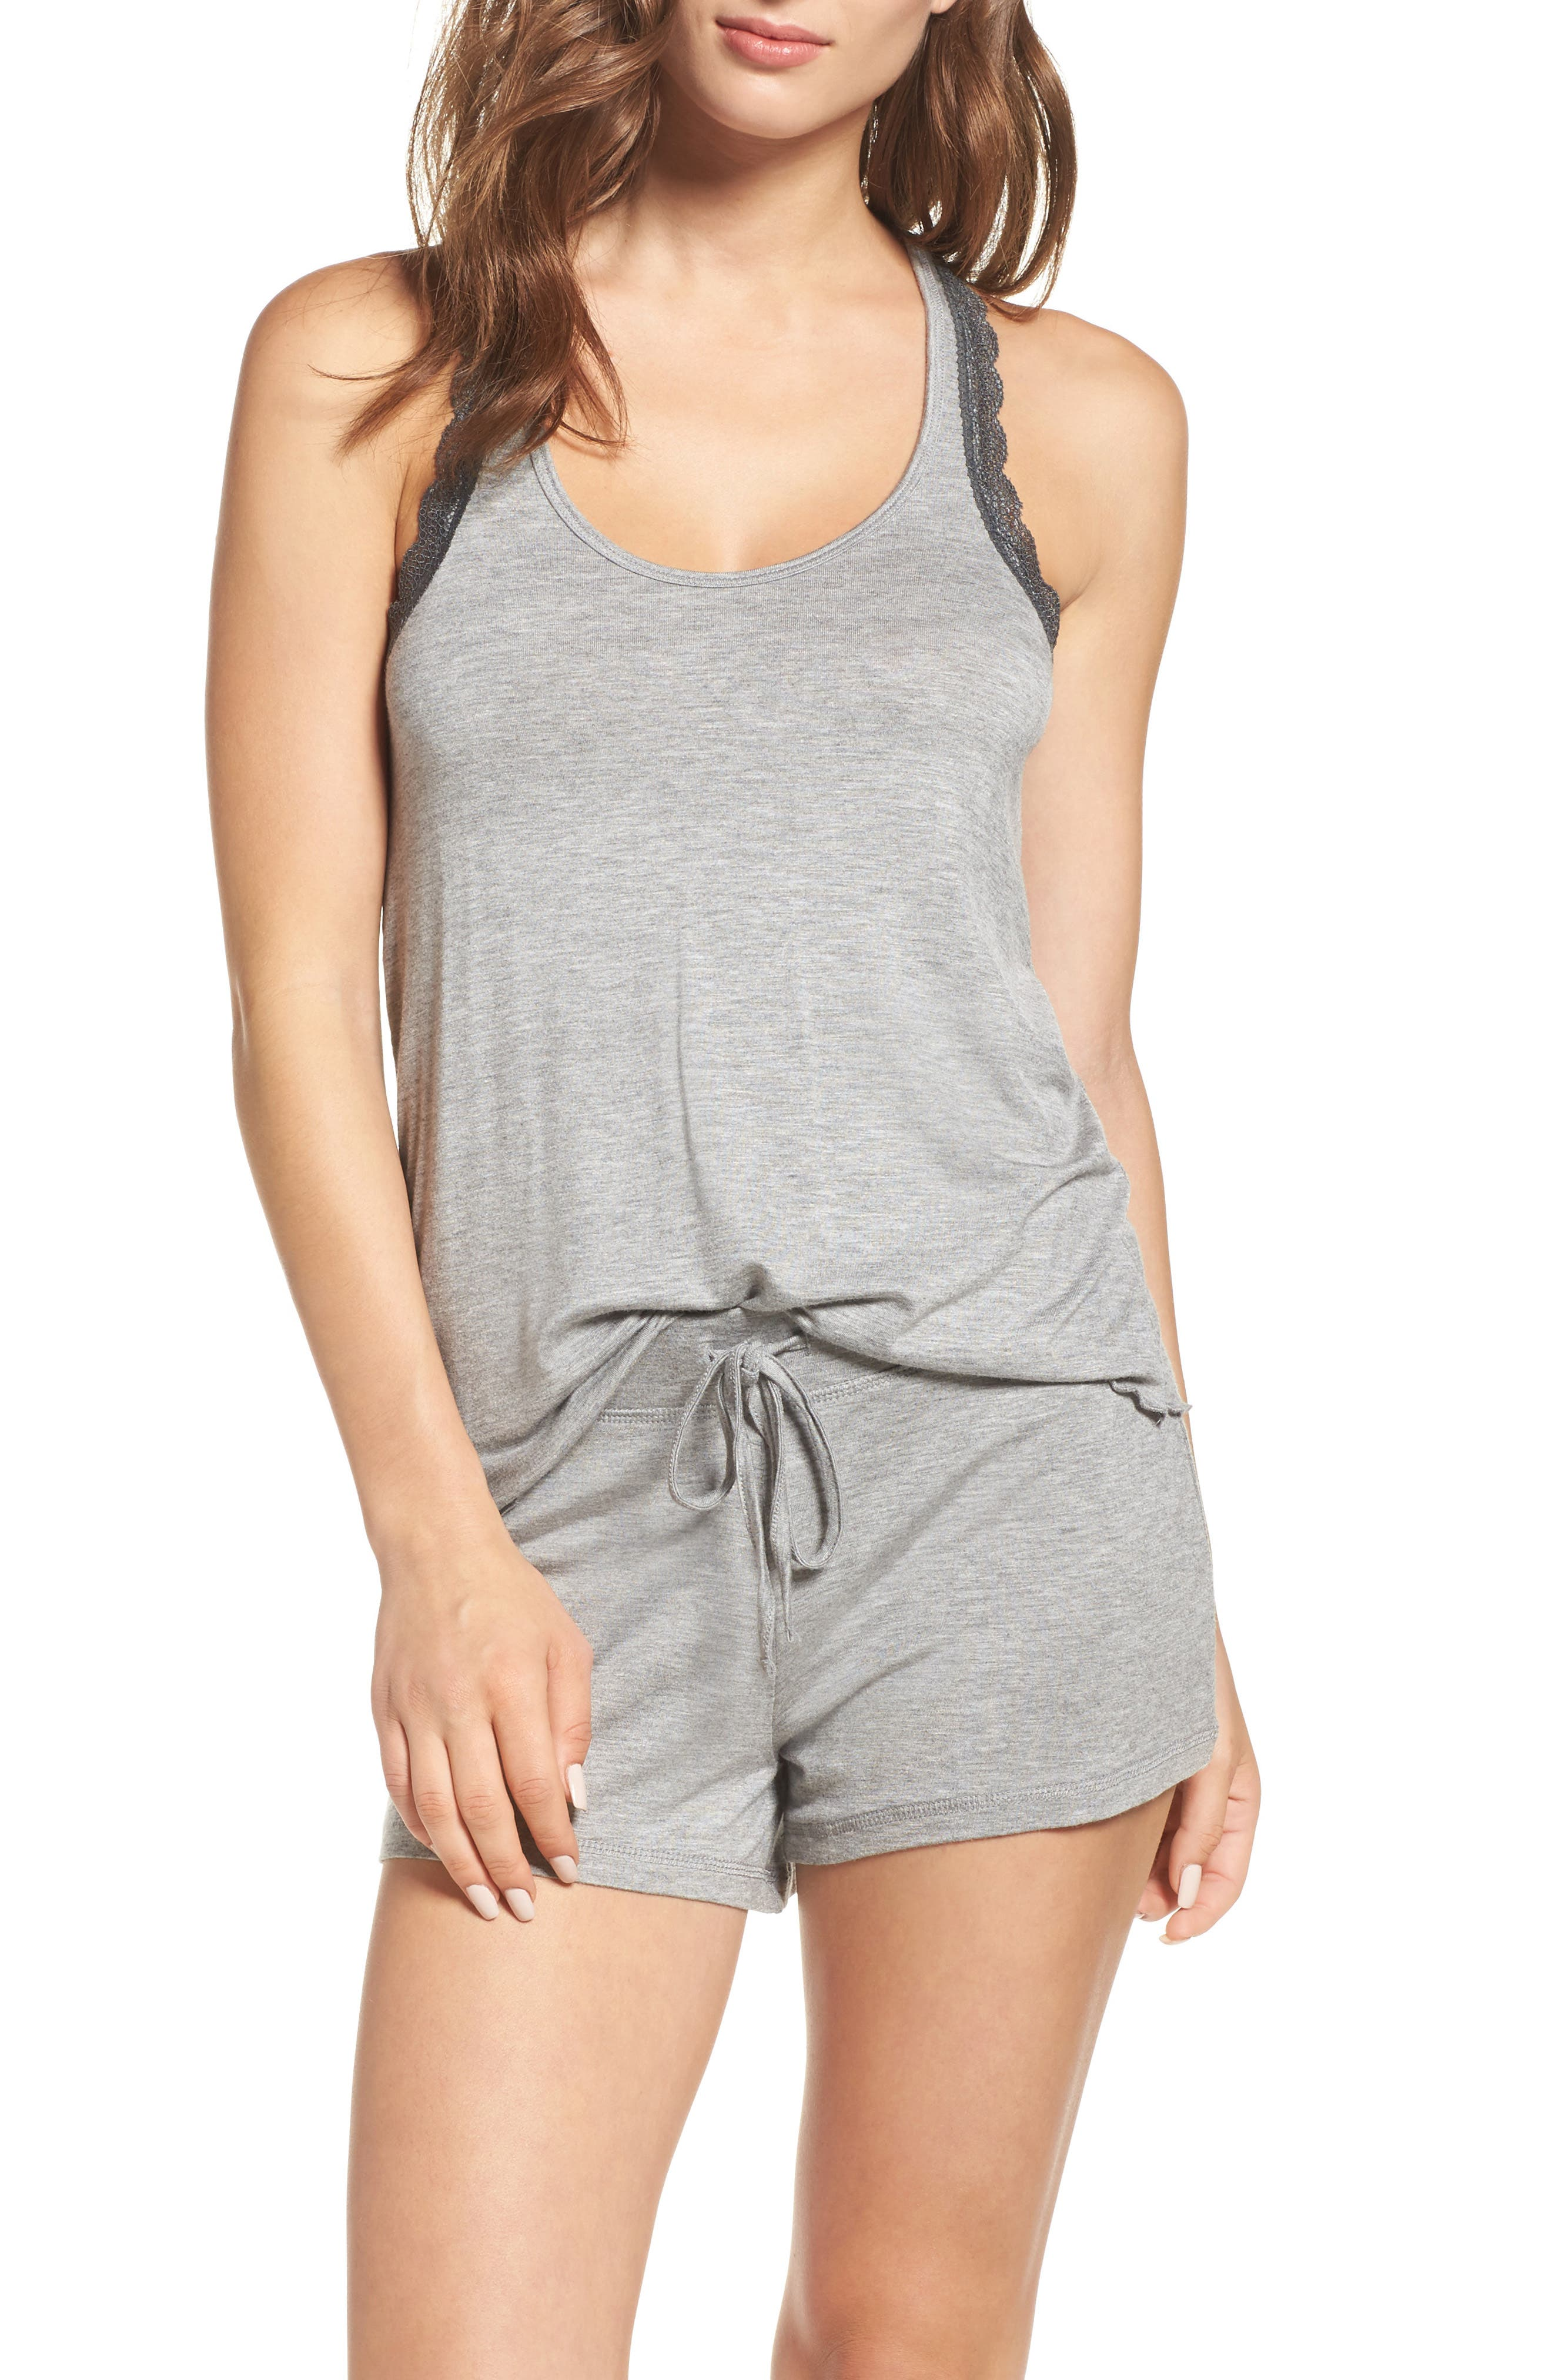 Honeydew Intimates All American Lace Trim Short Pajamas (2 for $60)